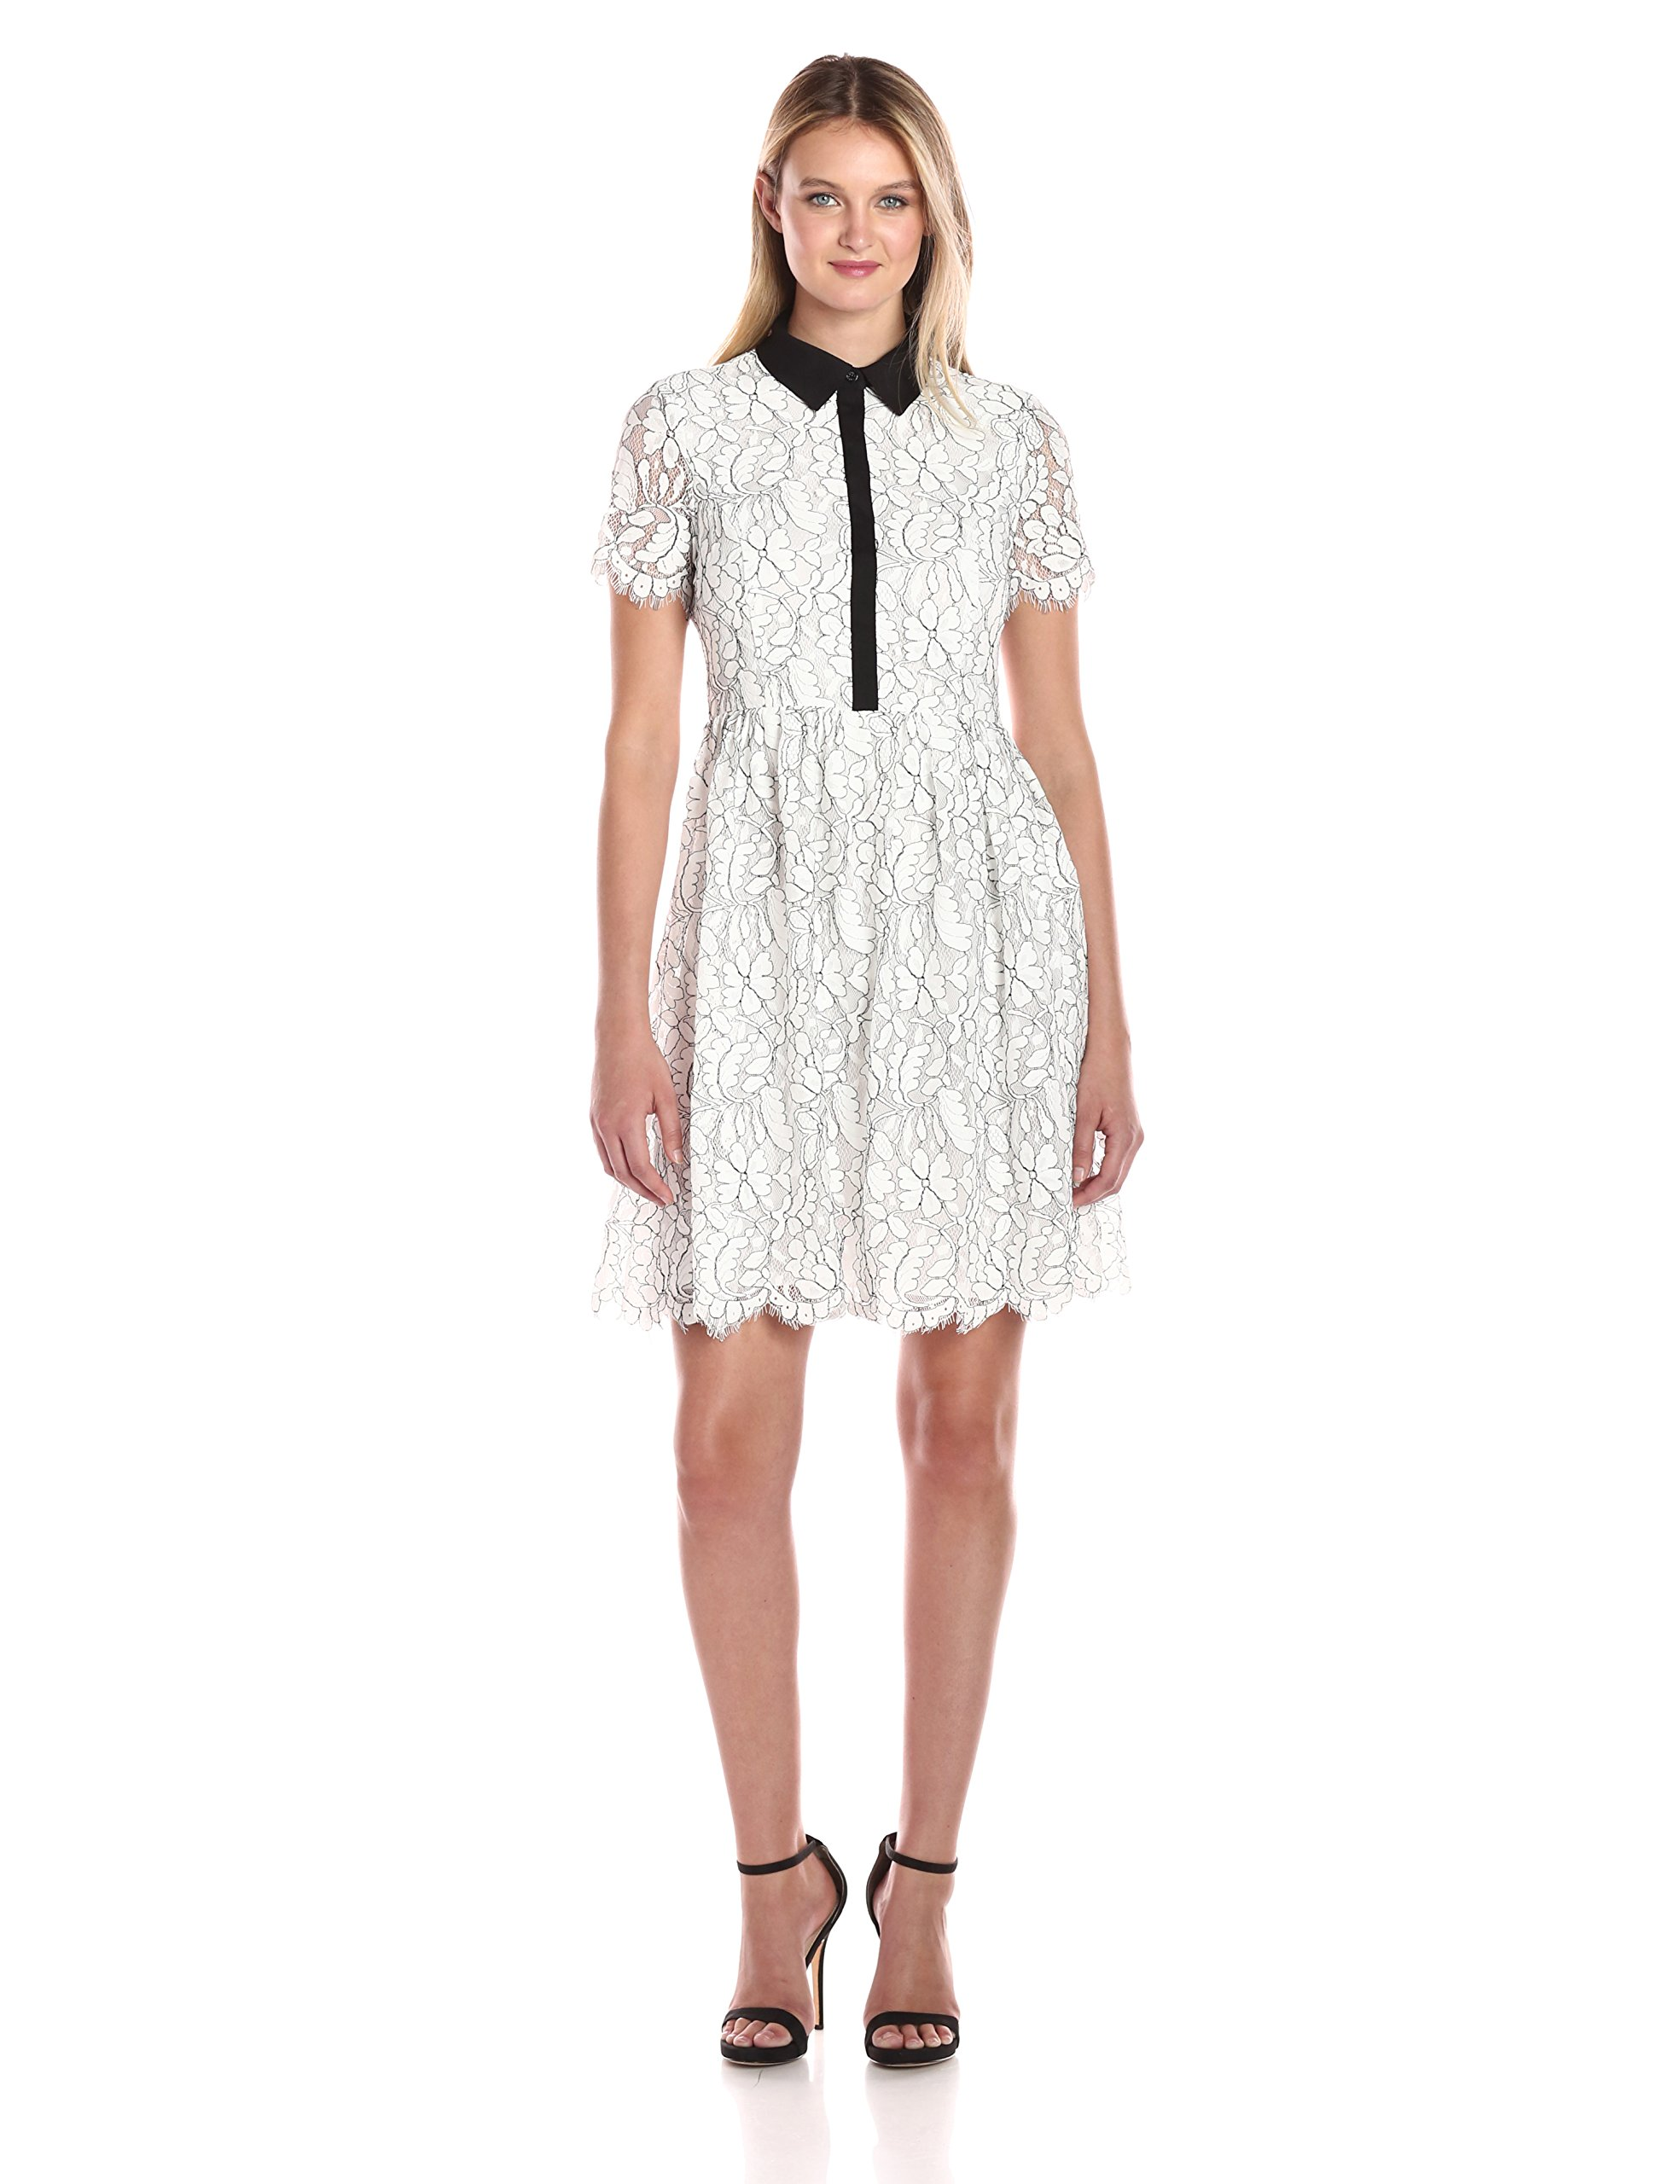 Tommy Hilfiger Women's Floral Outline Lace Shirt Dress, Ivory, 8